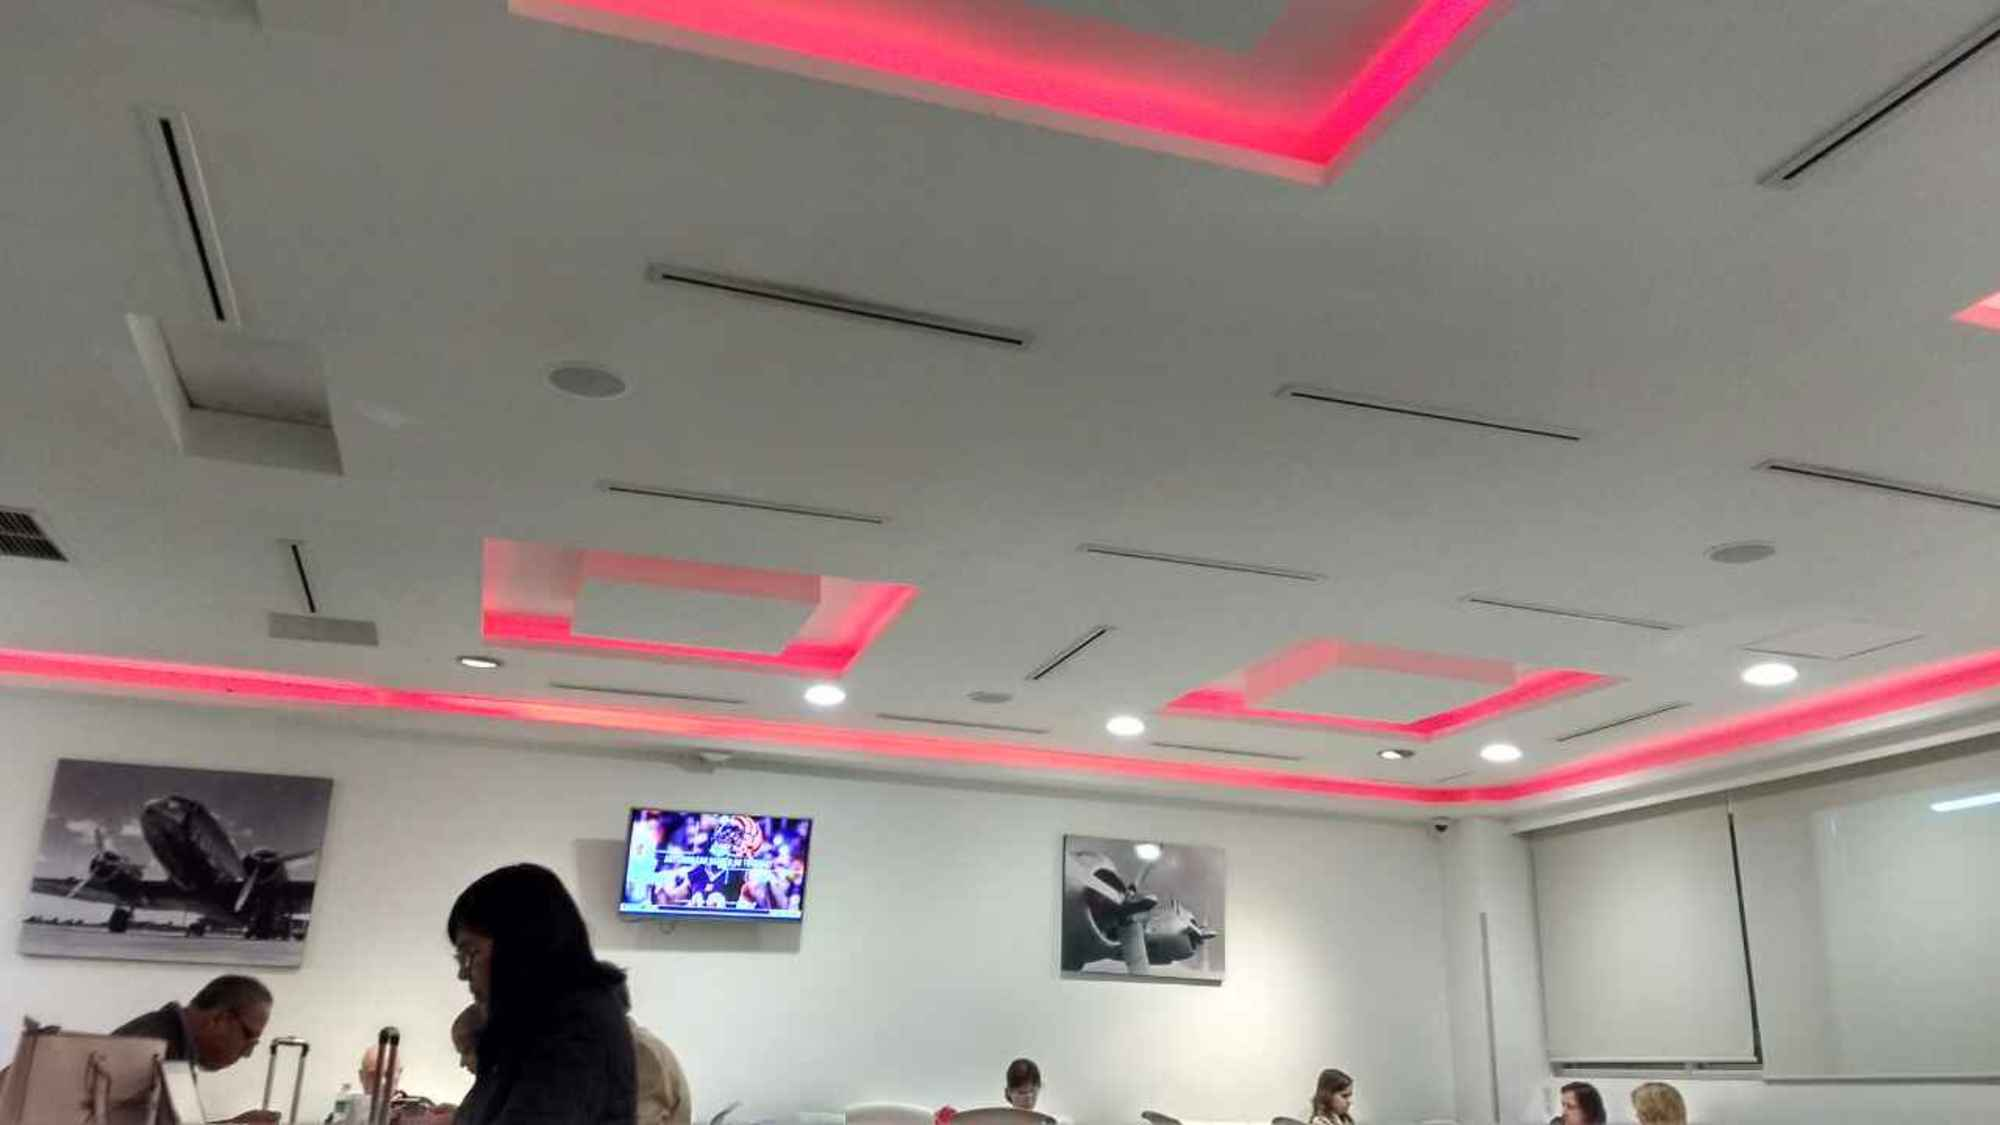 MEX: Avianca Sala VIP (Operated By Global Lounge) Reviews